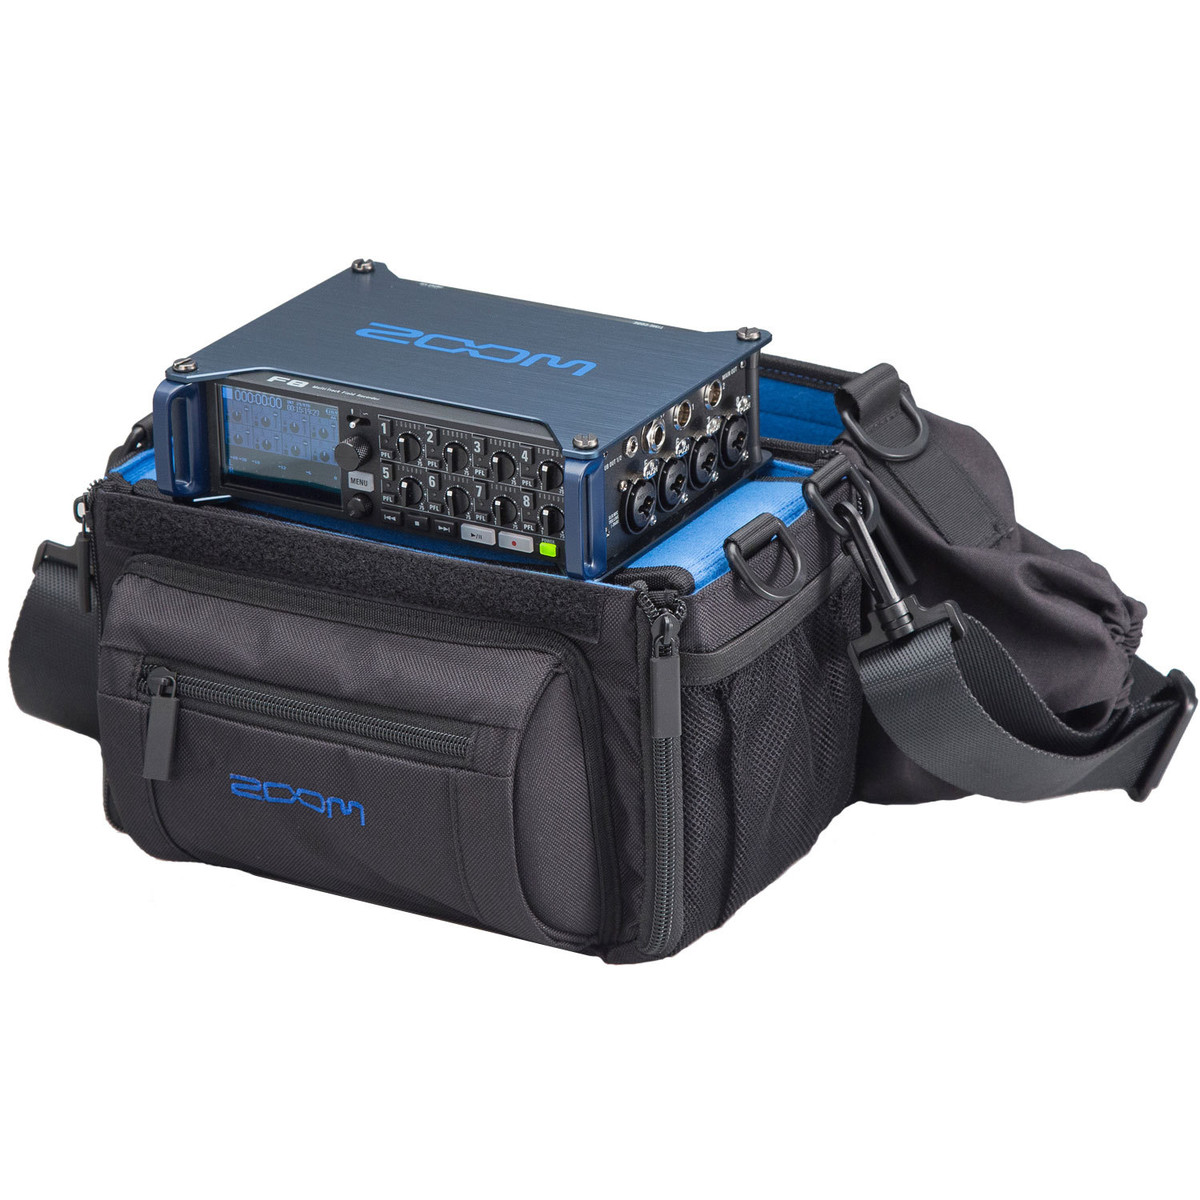 Image of Zoom F8 MultiTrack Field Recorder with Protective Case